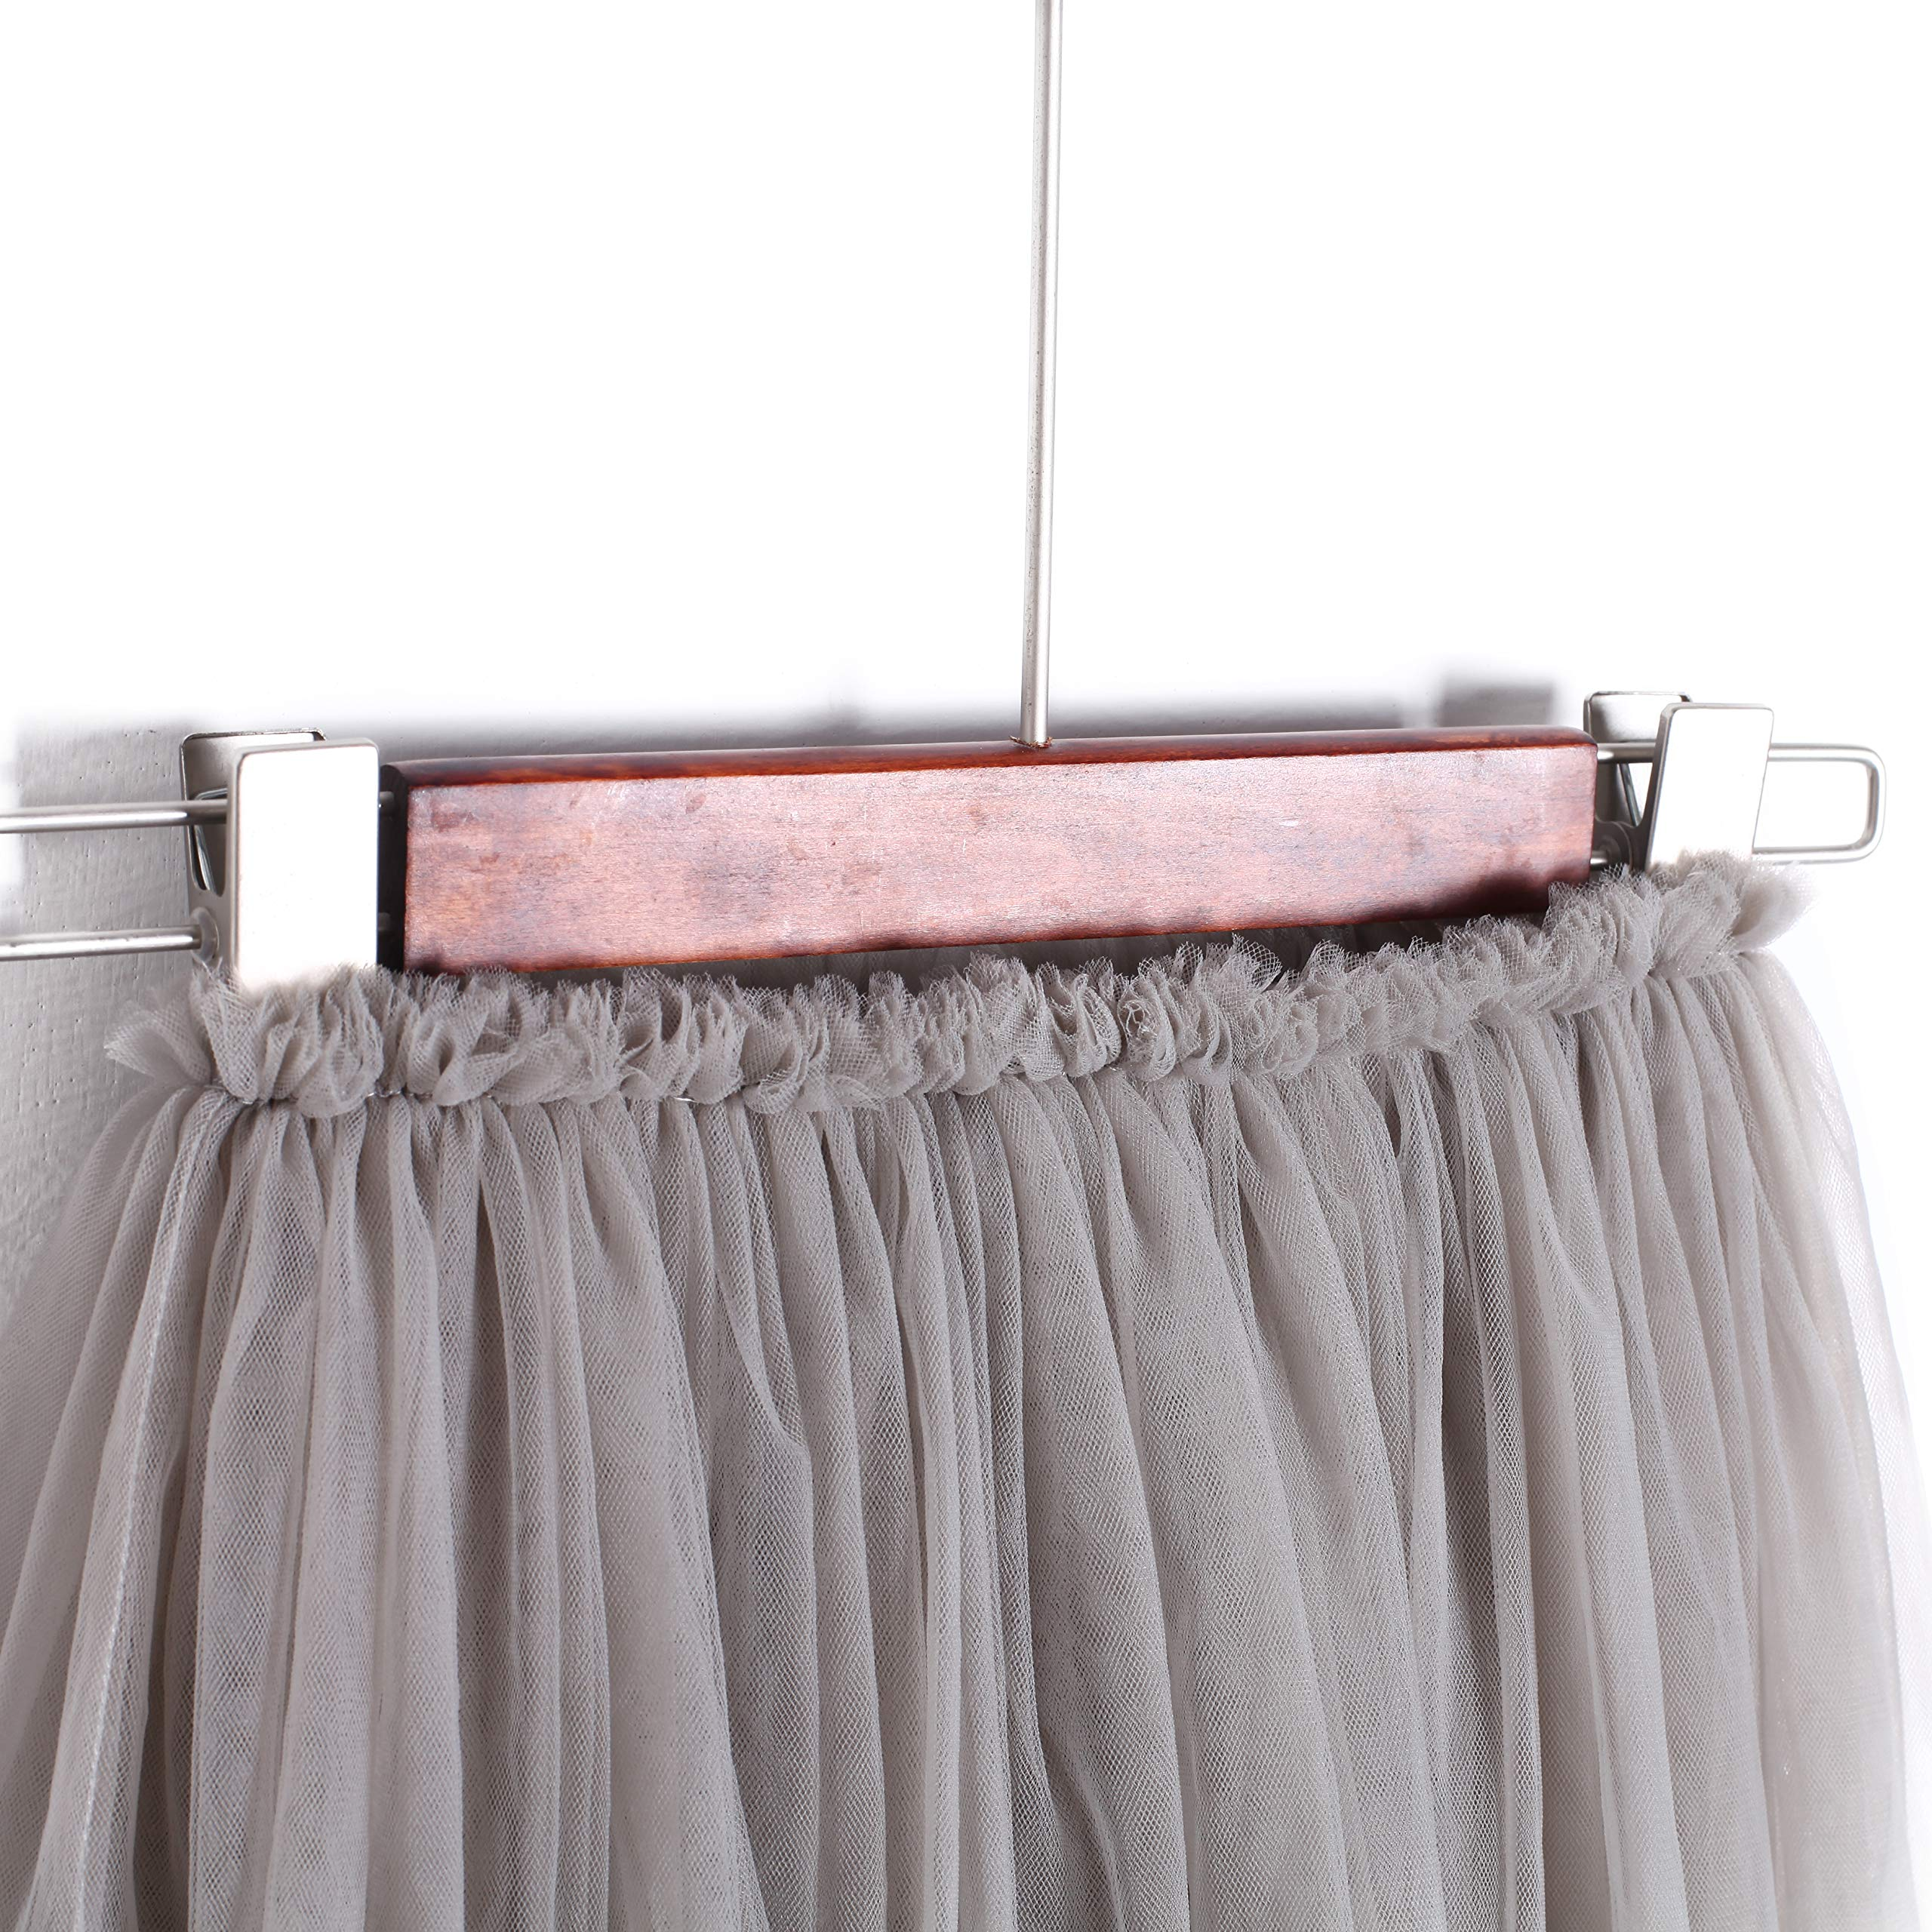 Flofallzique Tulle Tutu Girls Skirts for 1-12 Years Old Dancing Party Toddler Clothes(6, Gray) by Flofallzique (Image #3)